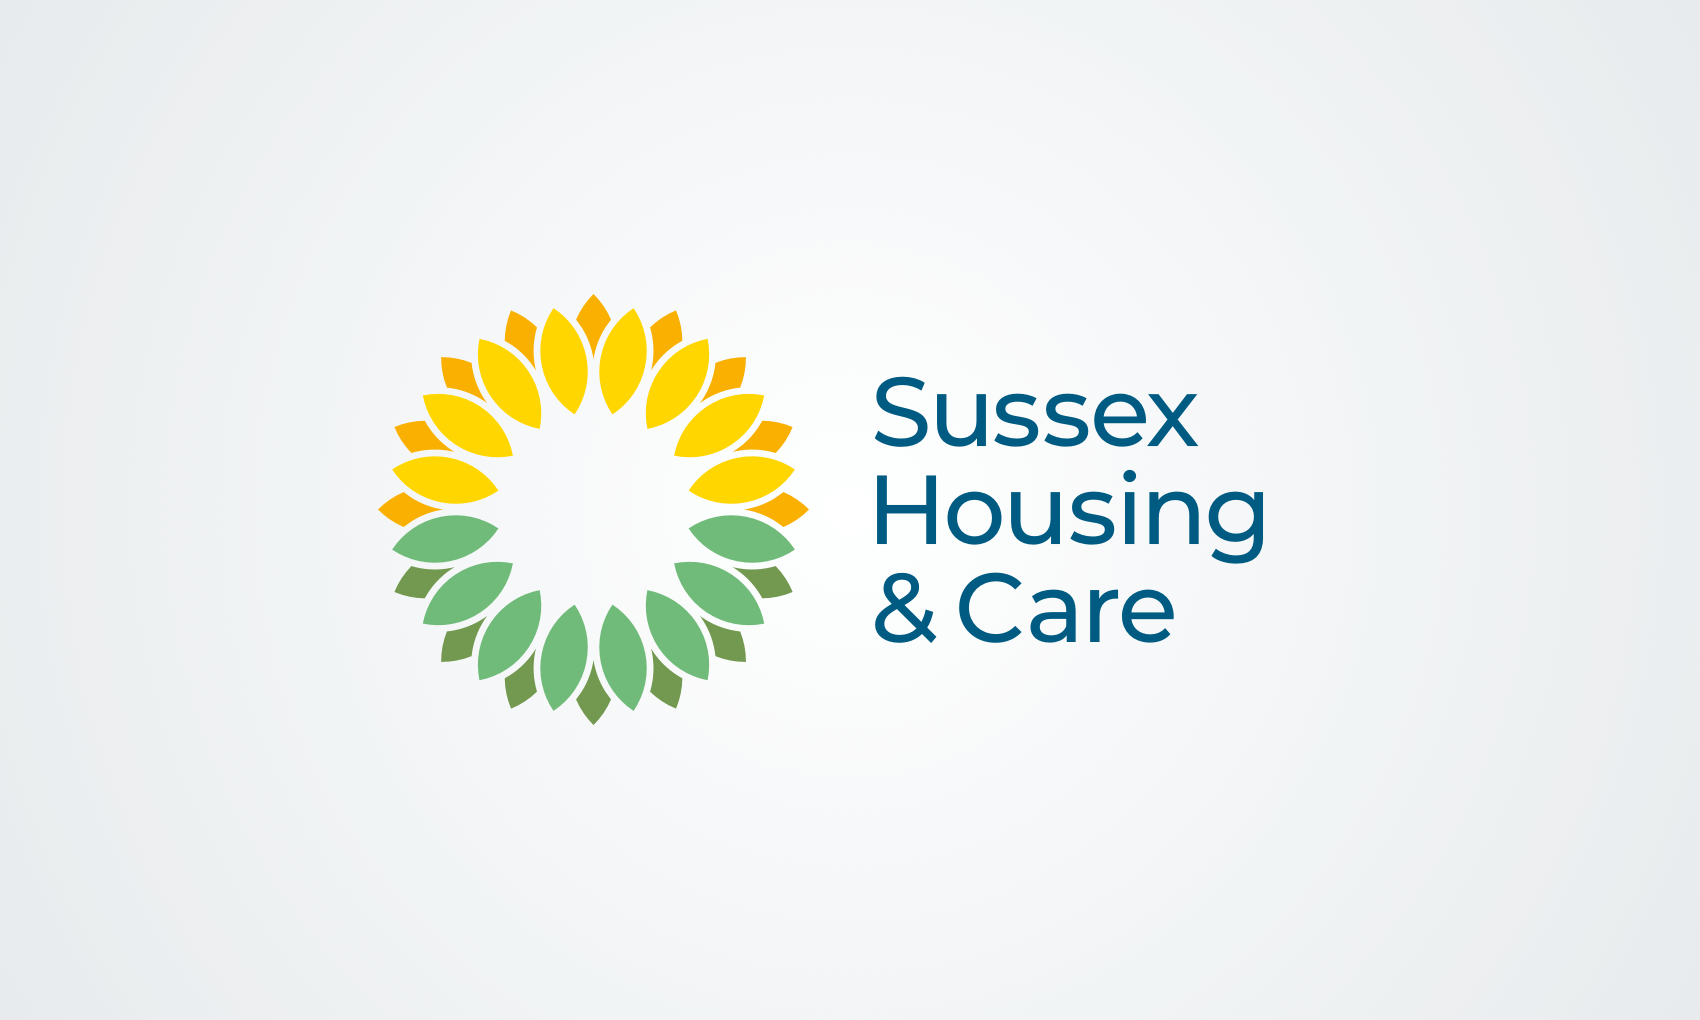 Sussex Housing & Care brand identity